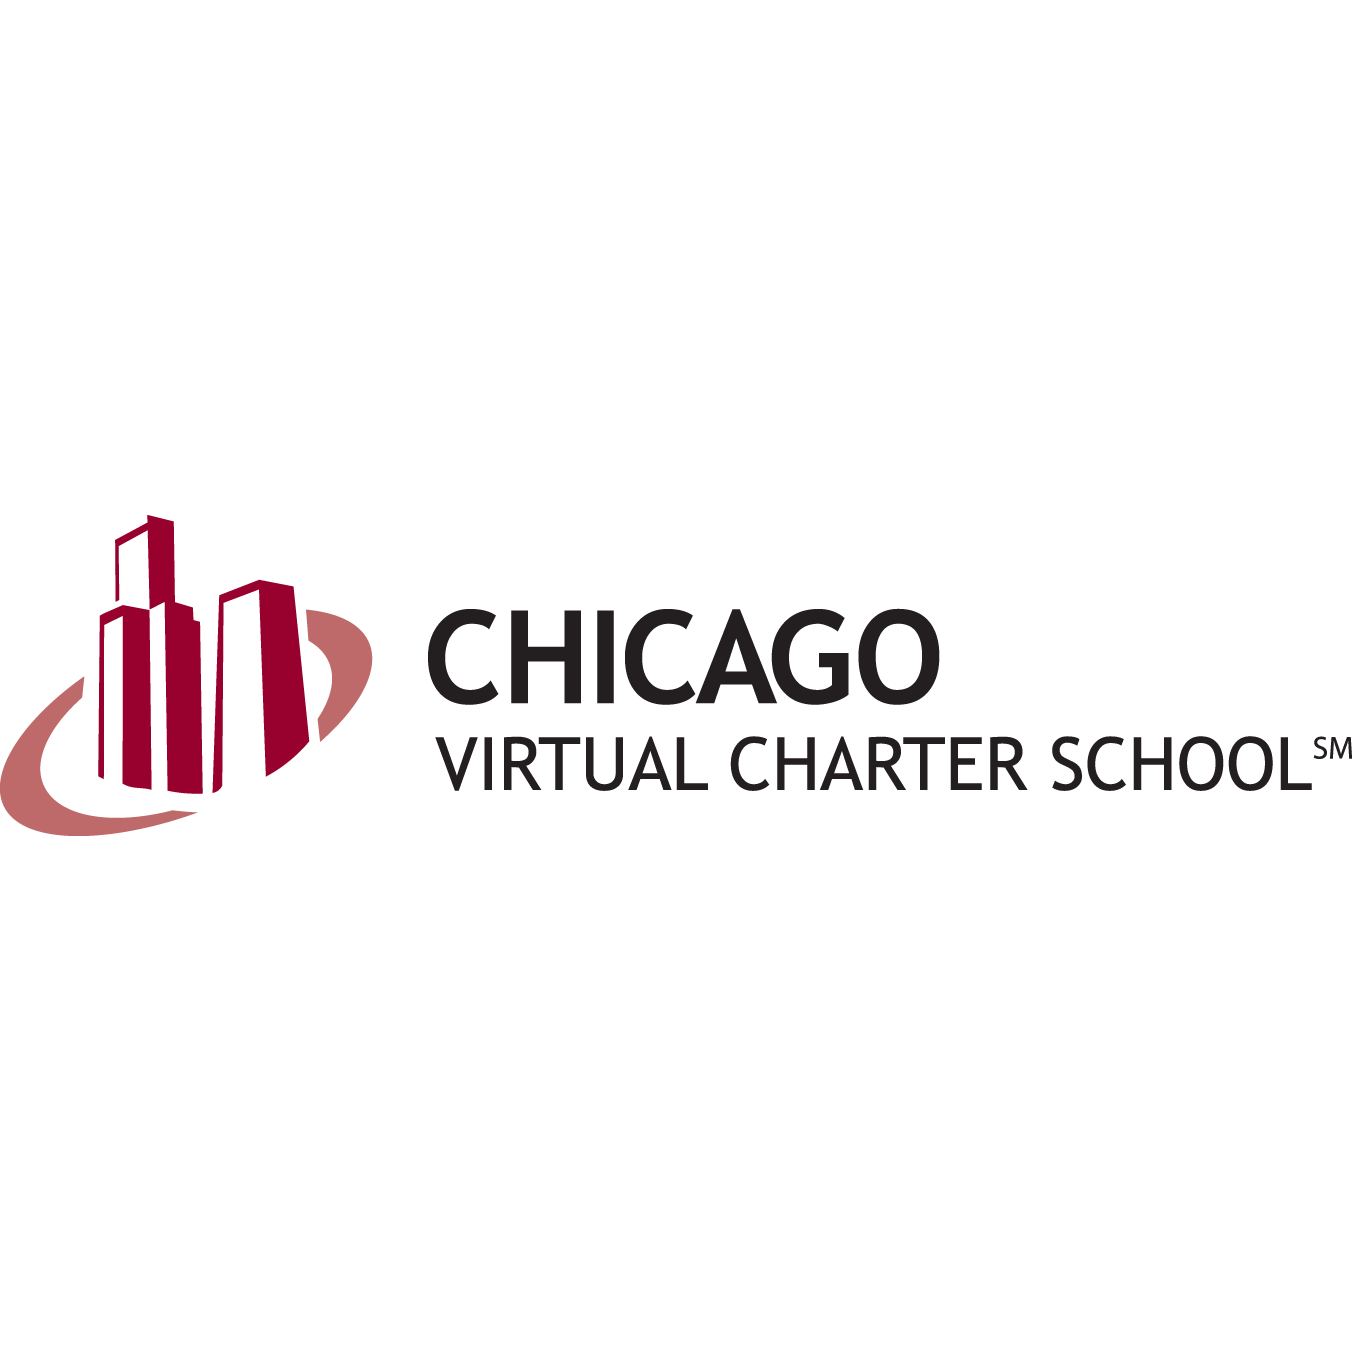 Chicago Virtual Charter School